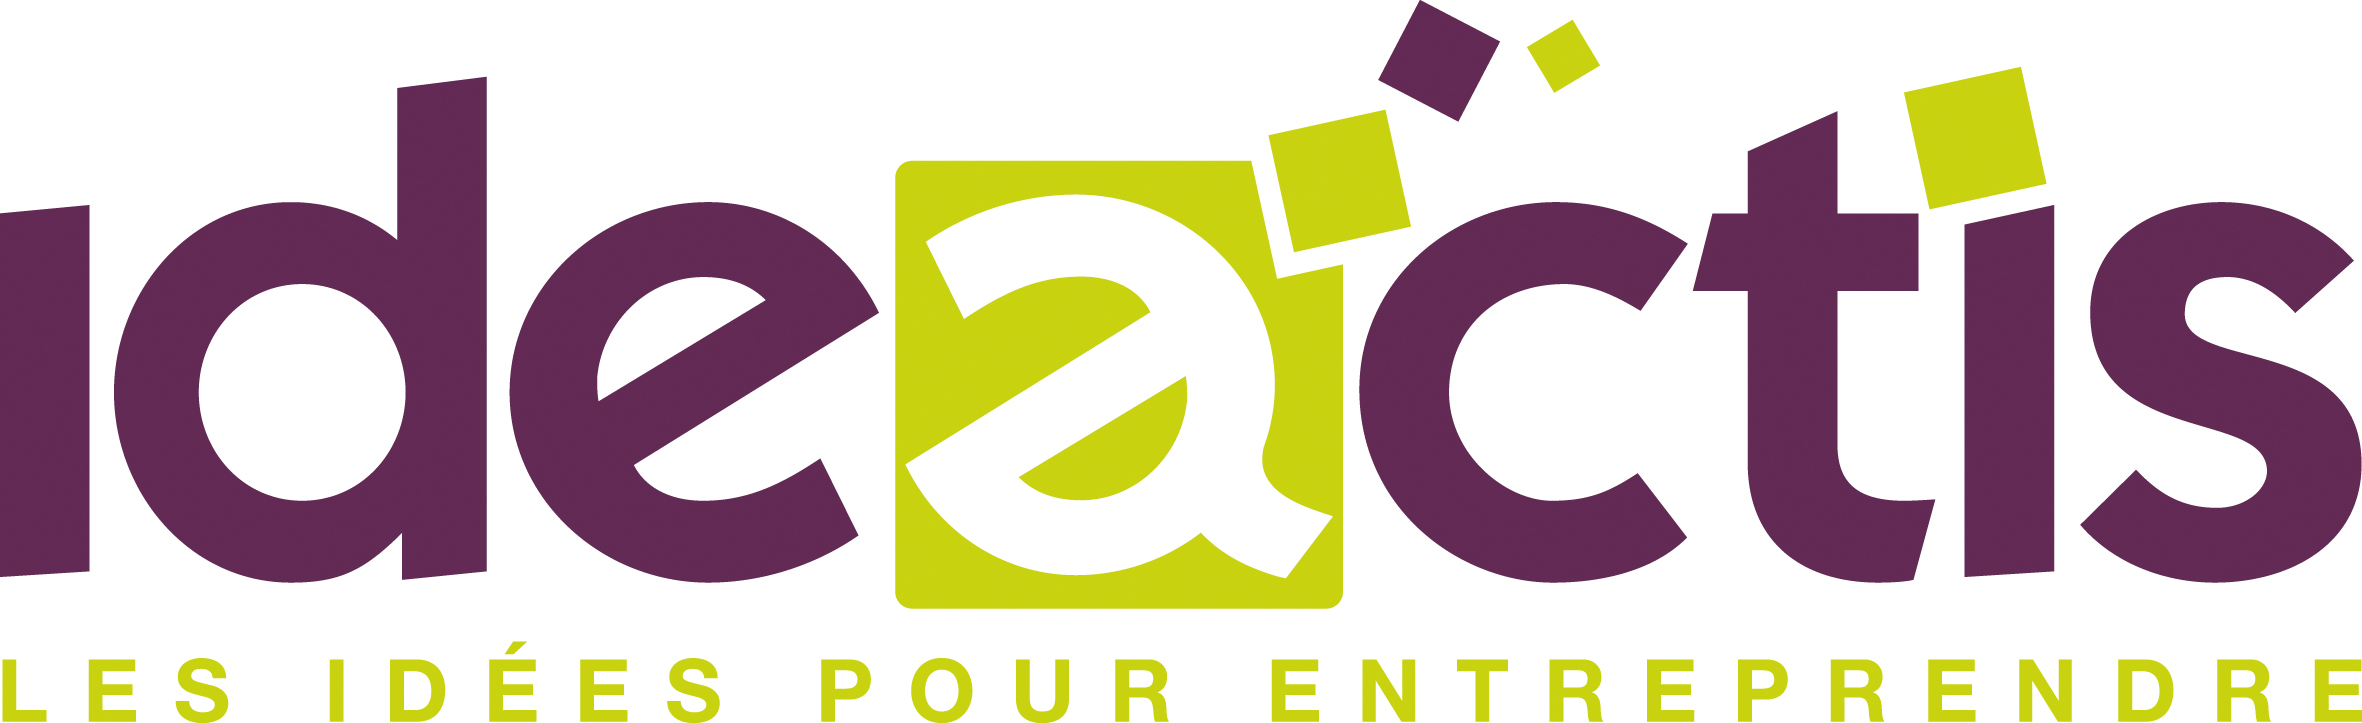 Idee d 39 entreprise a creer for Idee entreprise rentable